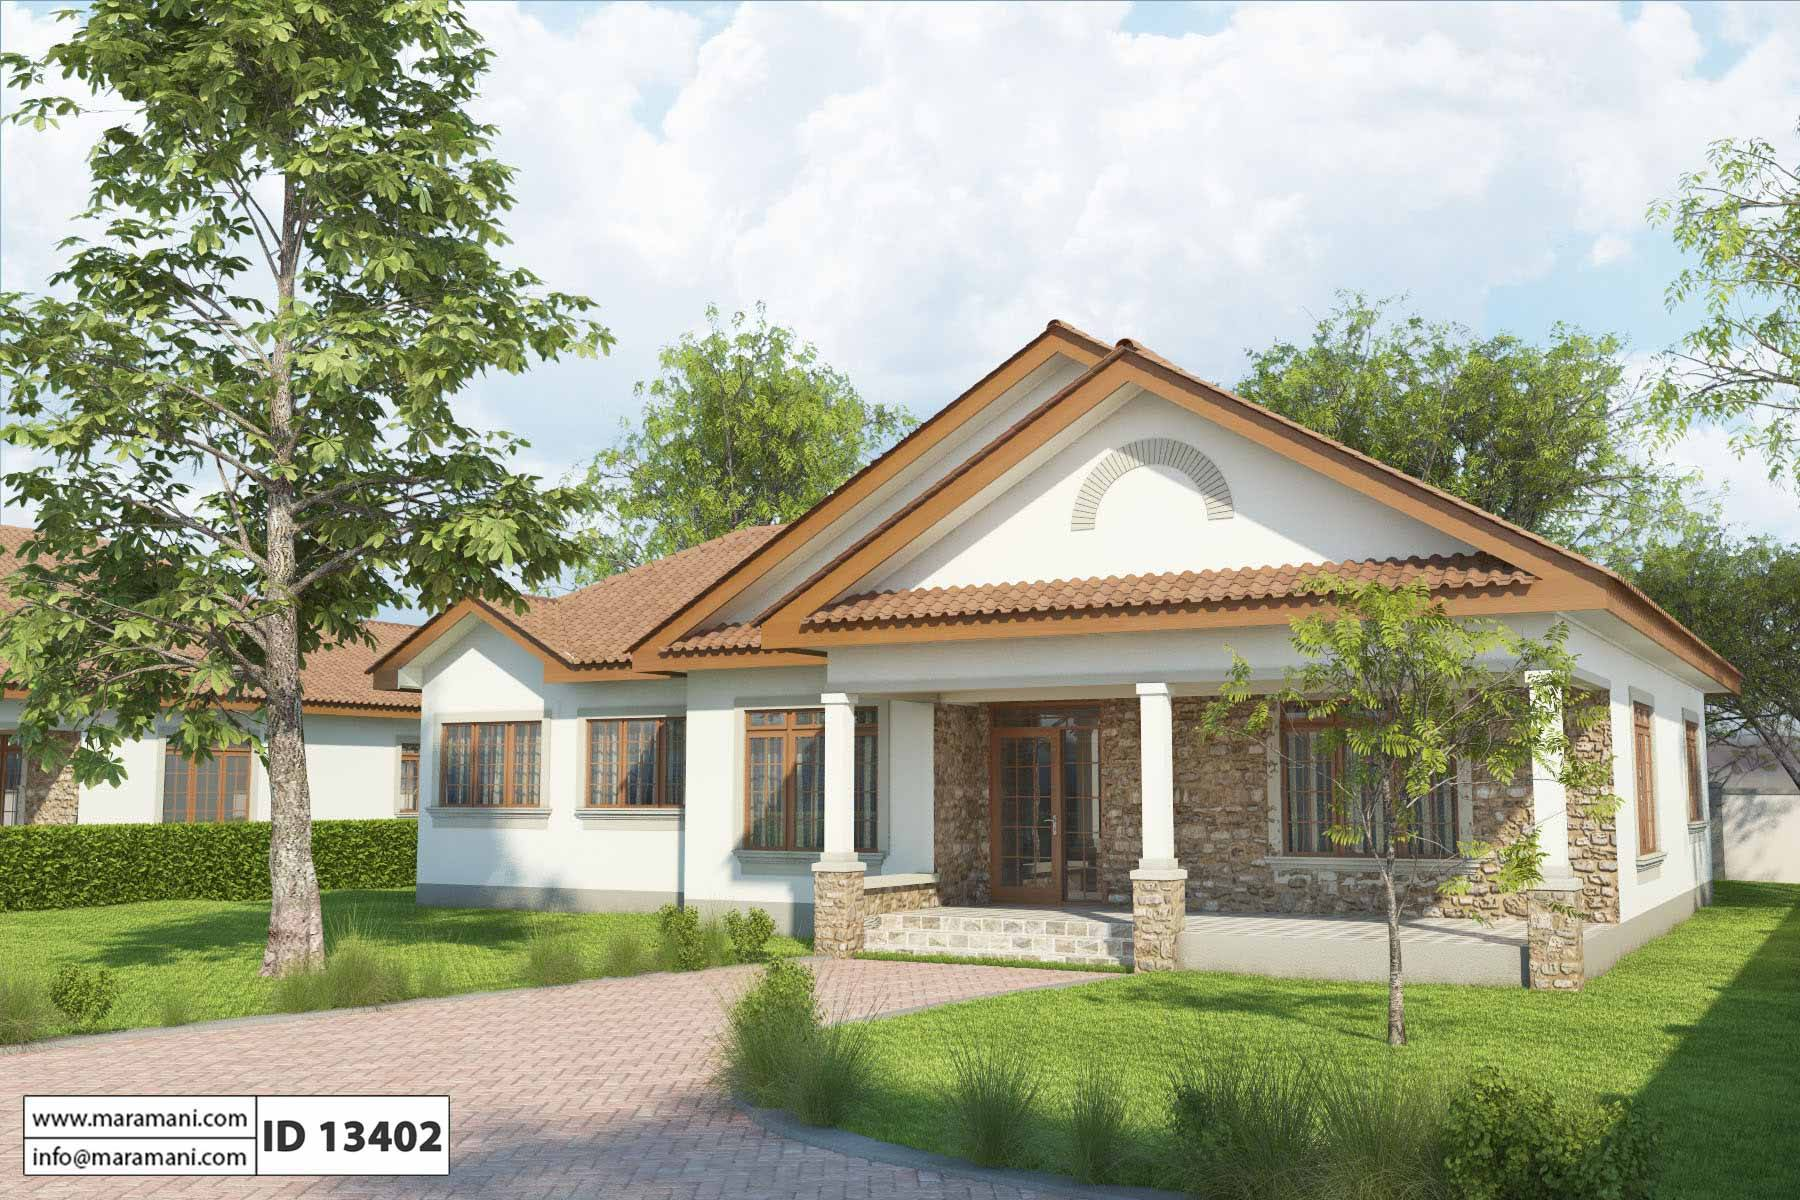 3 bedroom house plan id 13402